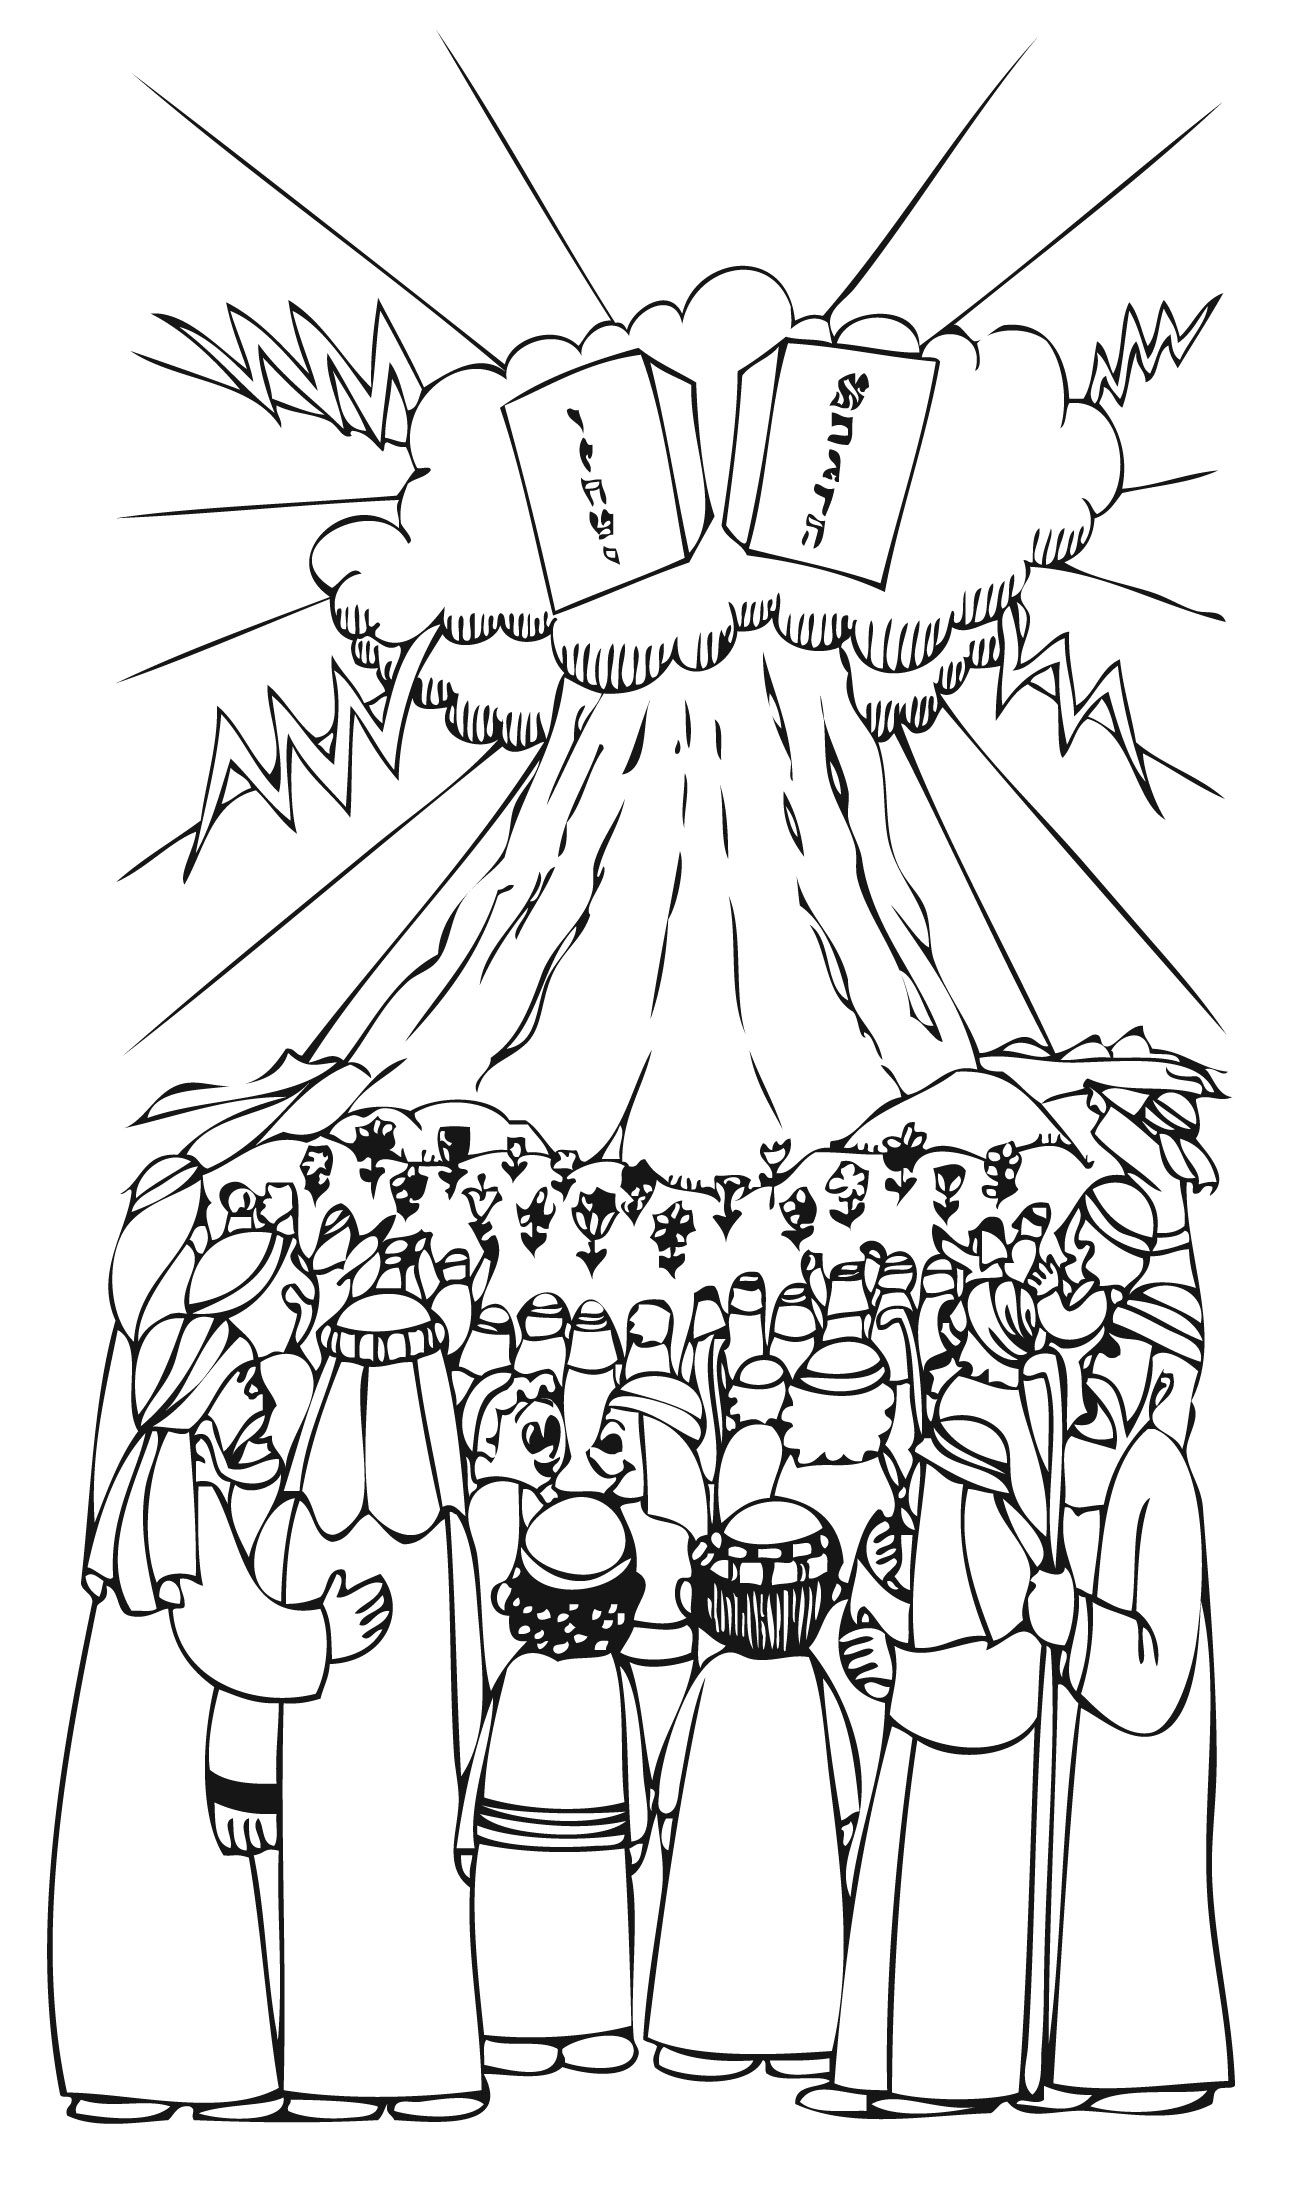 Coloring Sheet The Jews Standing Around Mount Sinai As They